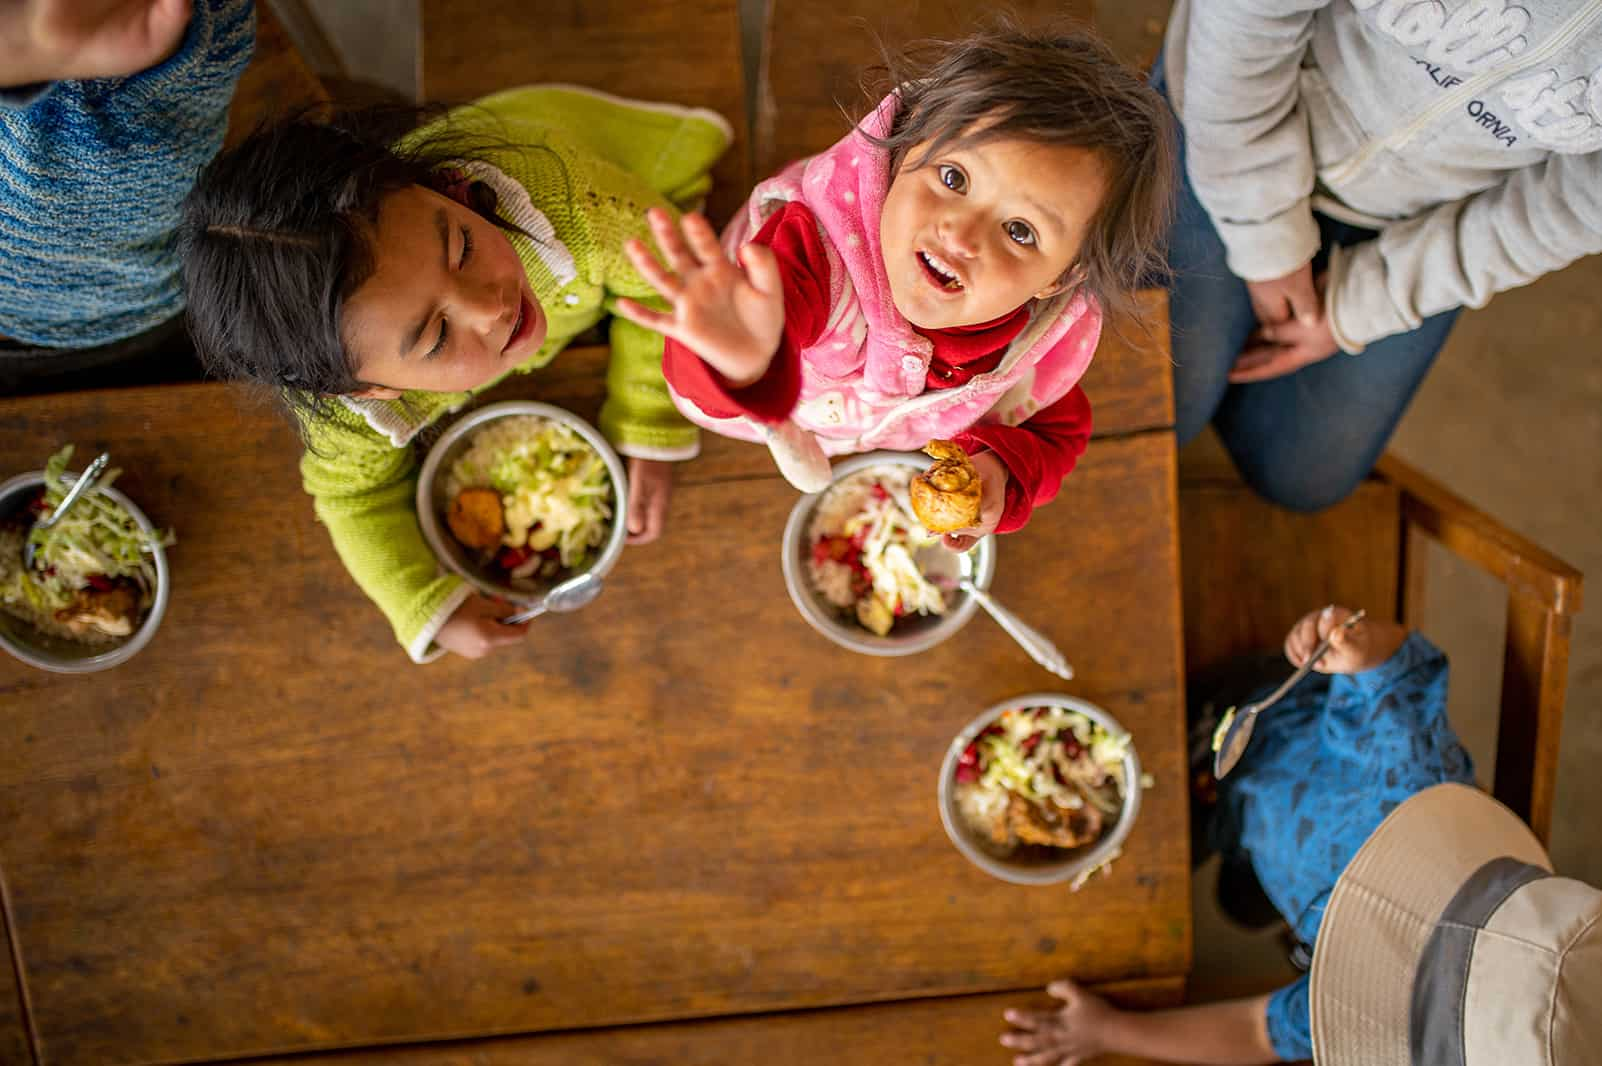 Children at a table eating looking at the camera above their heads